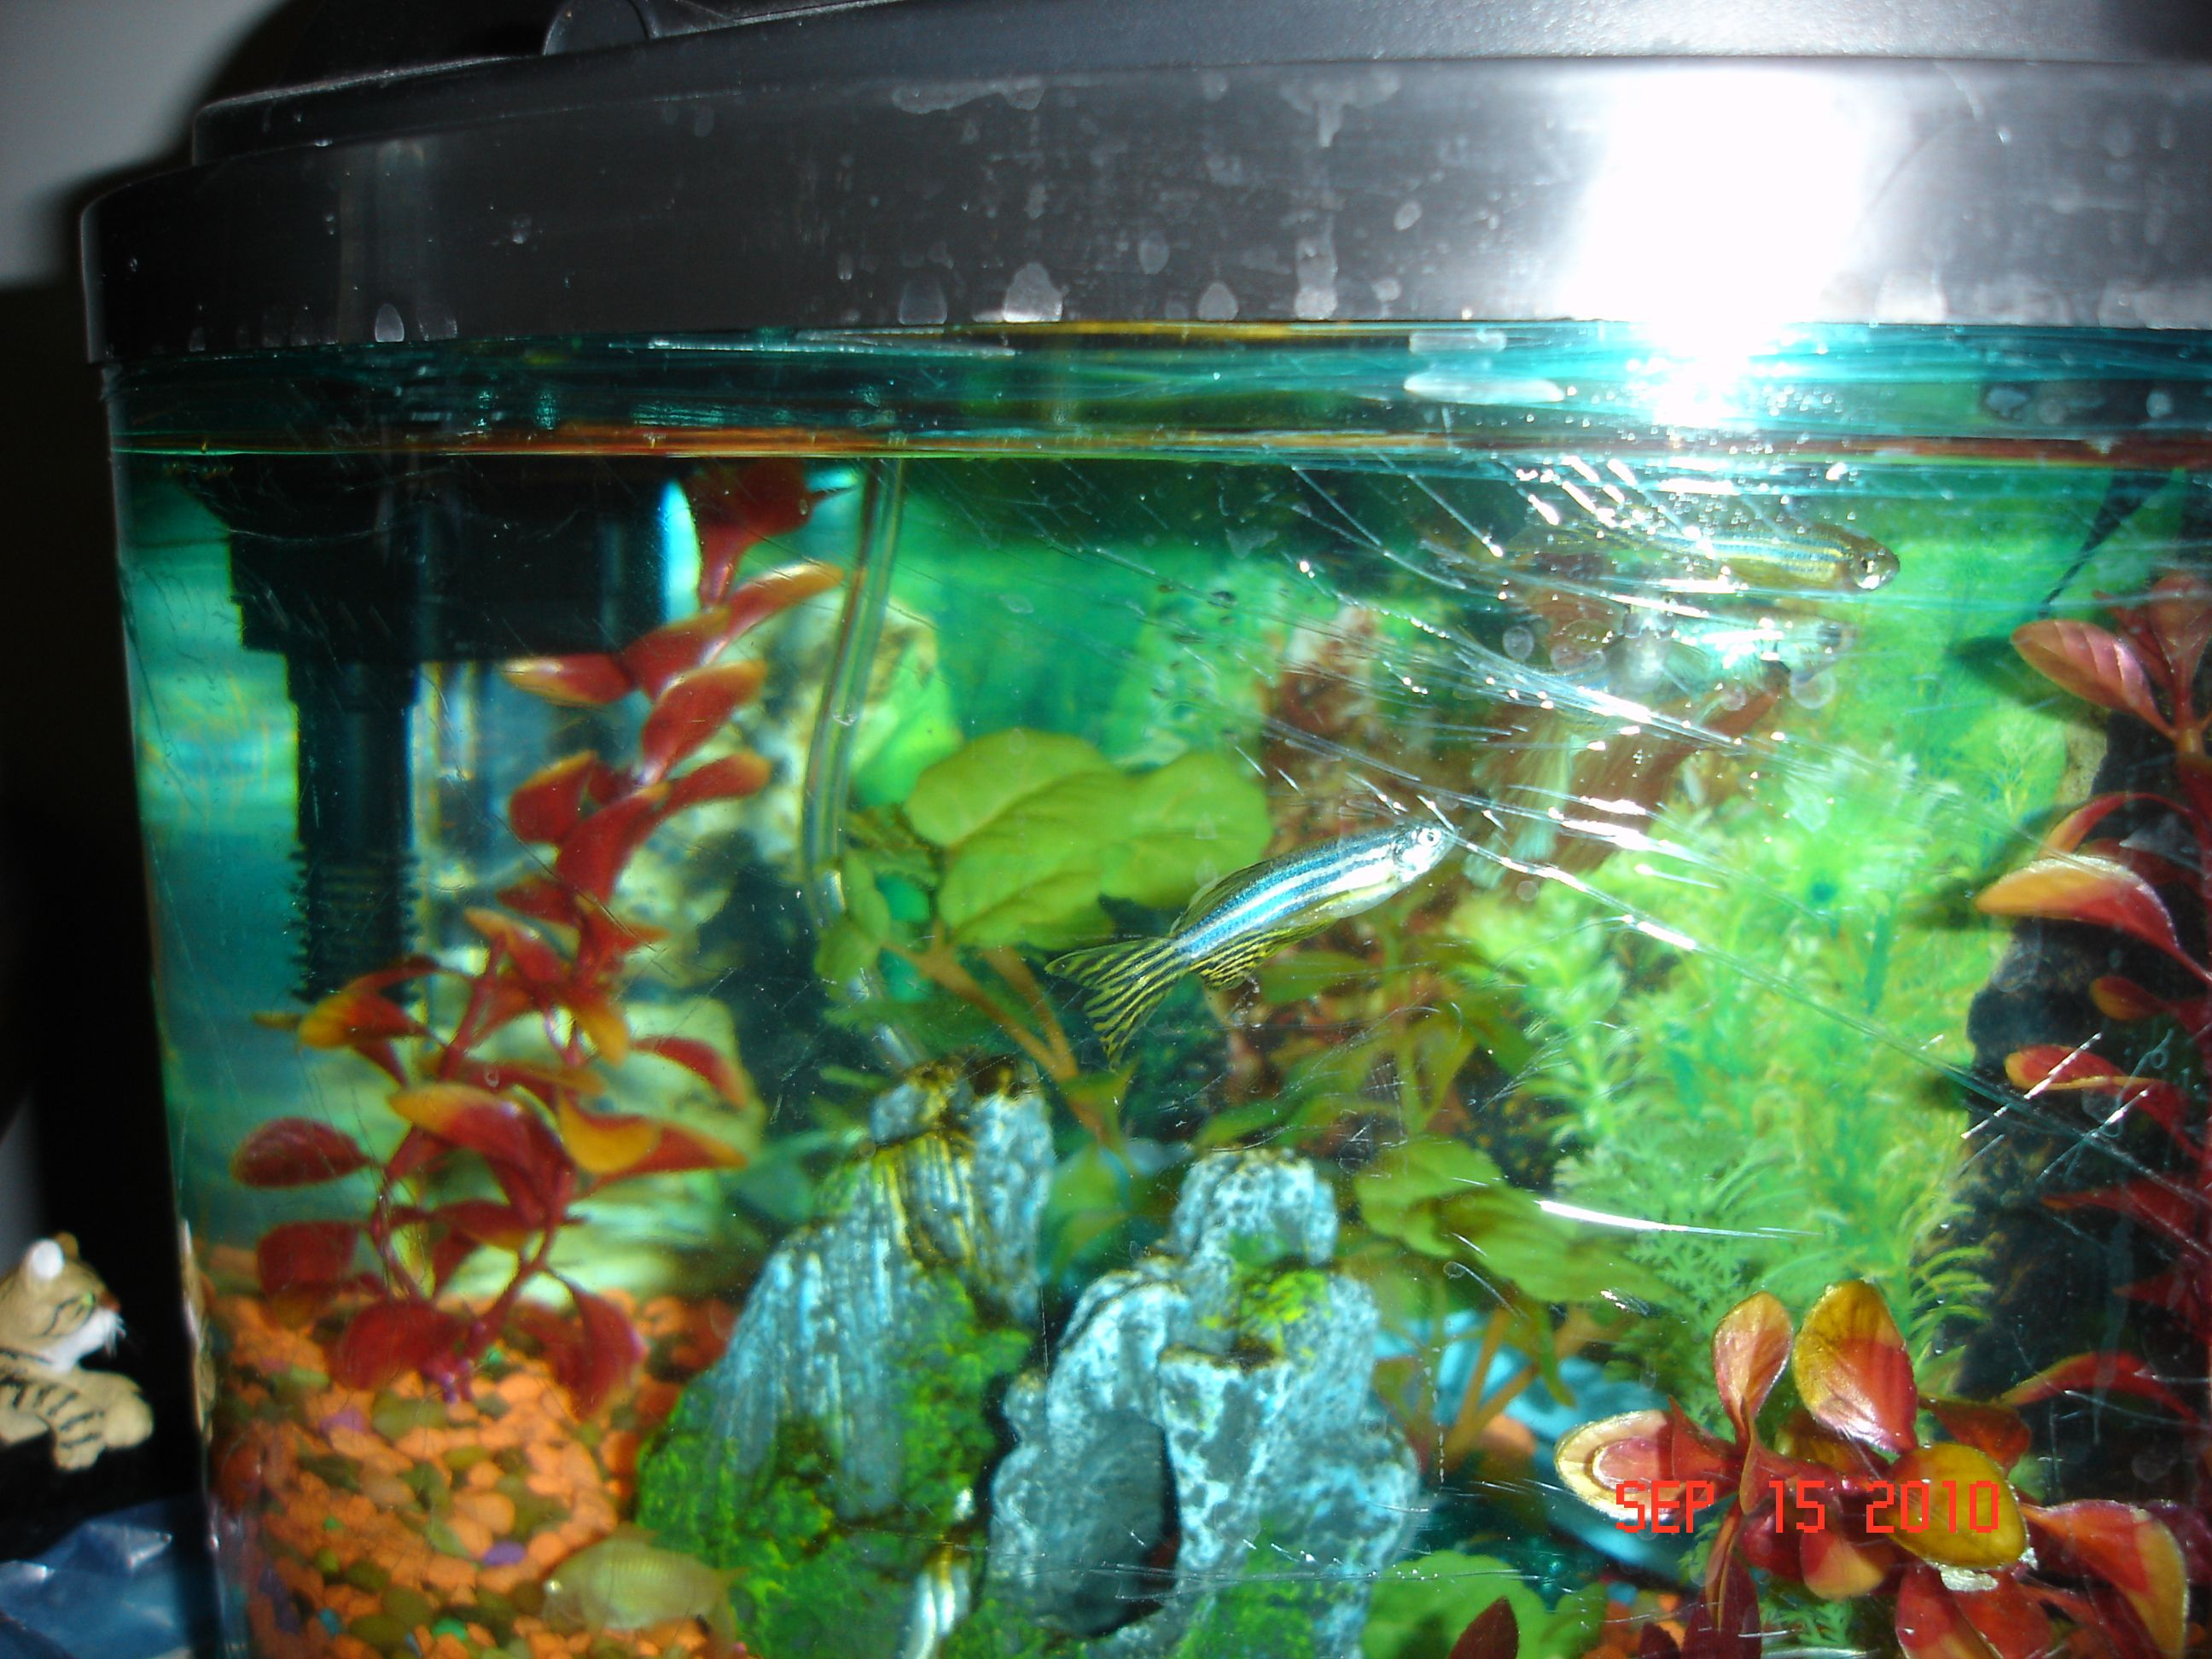 Freshwater fish compatibility - 131 Best Images About Freshwater Aquariums Fish Etc On Pinterest Cichlids Aquascaping And Aquarium Fish